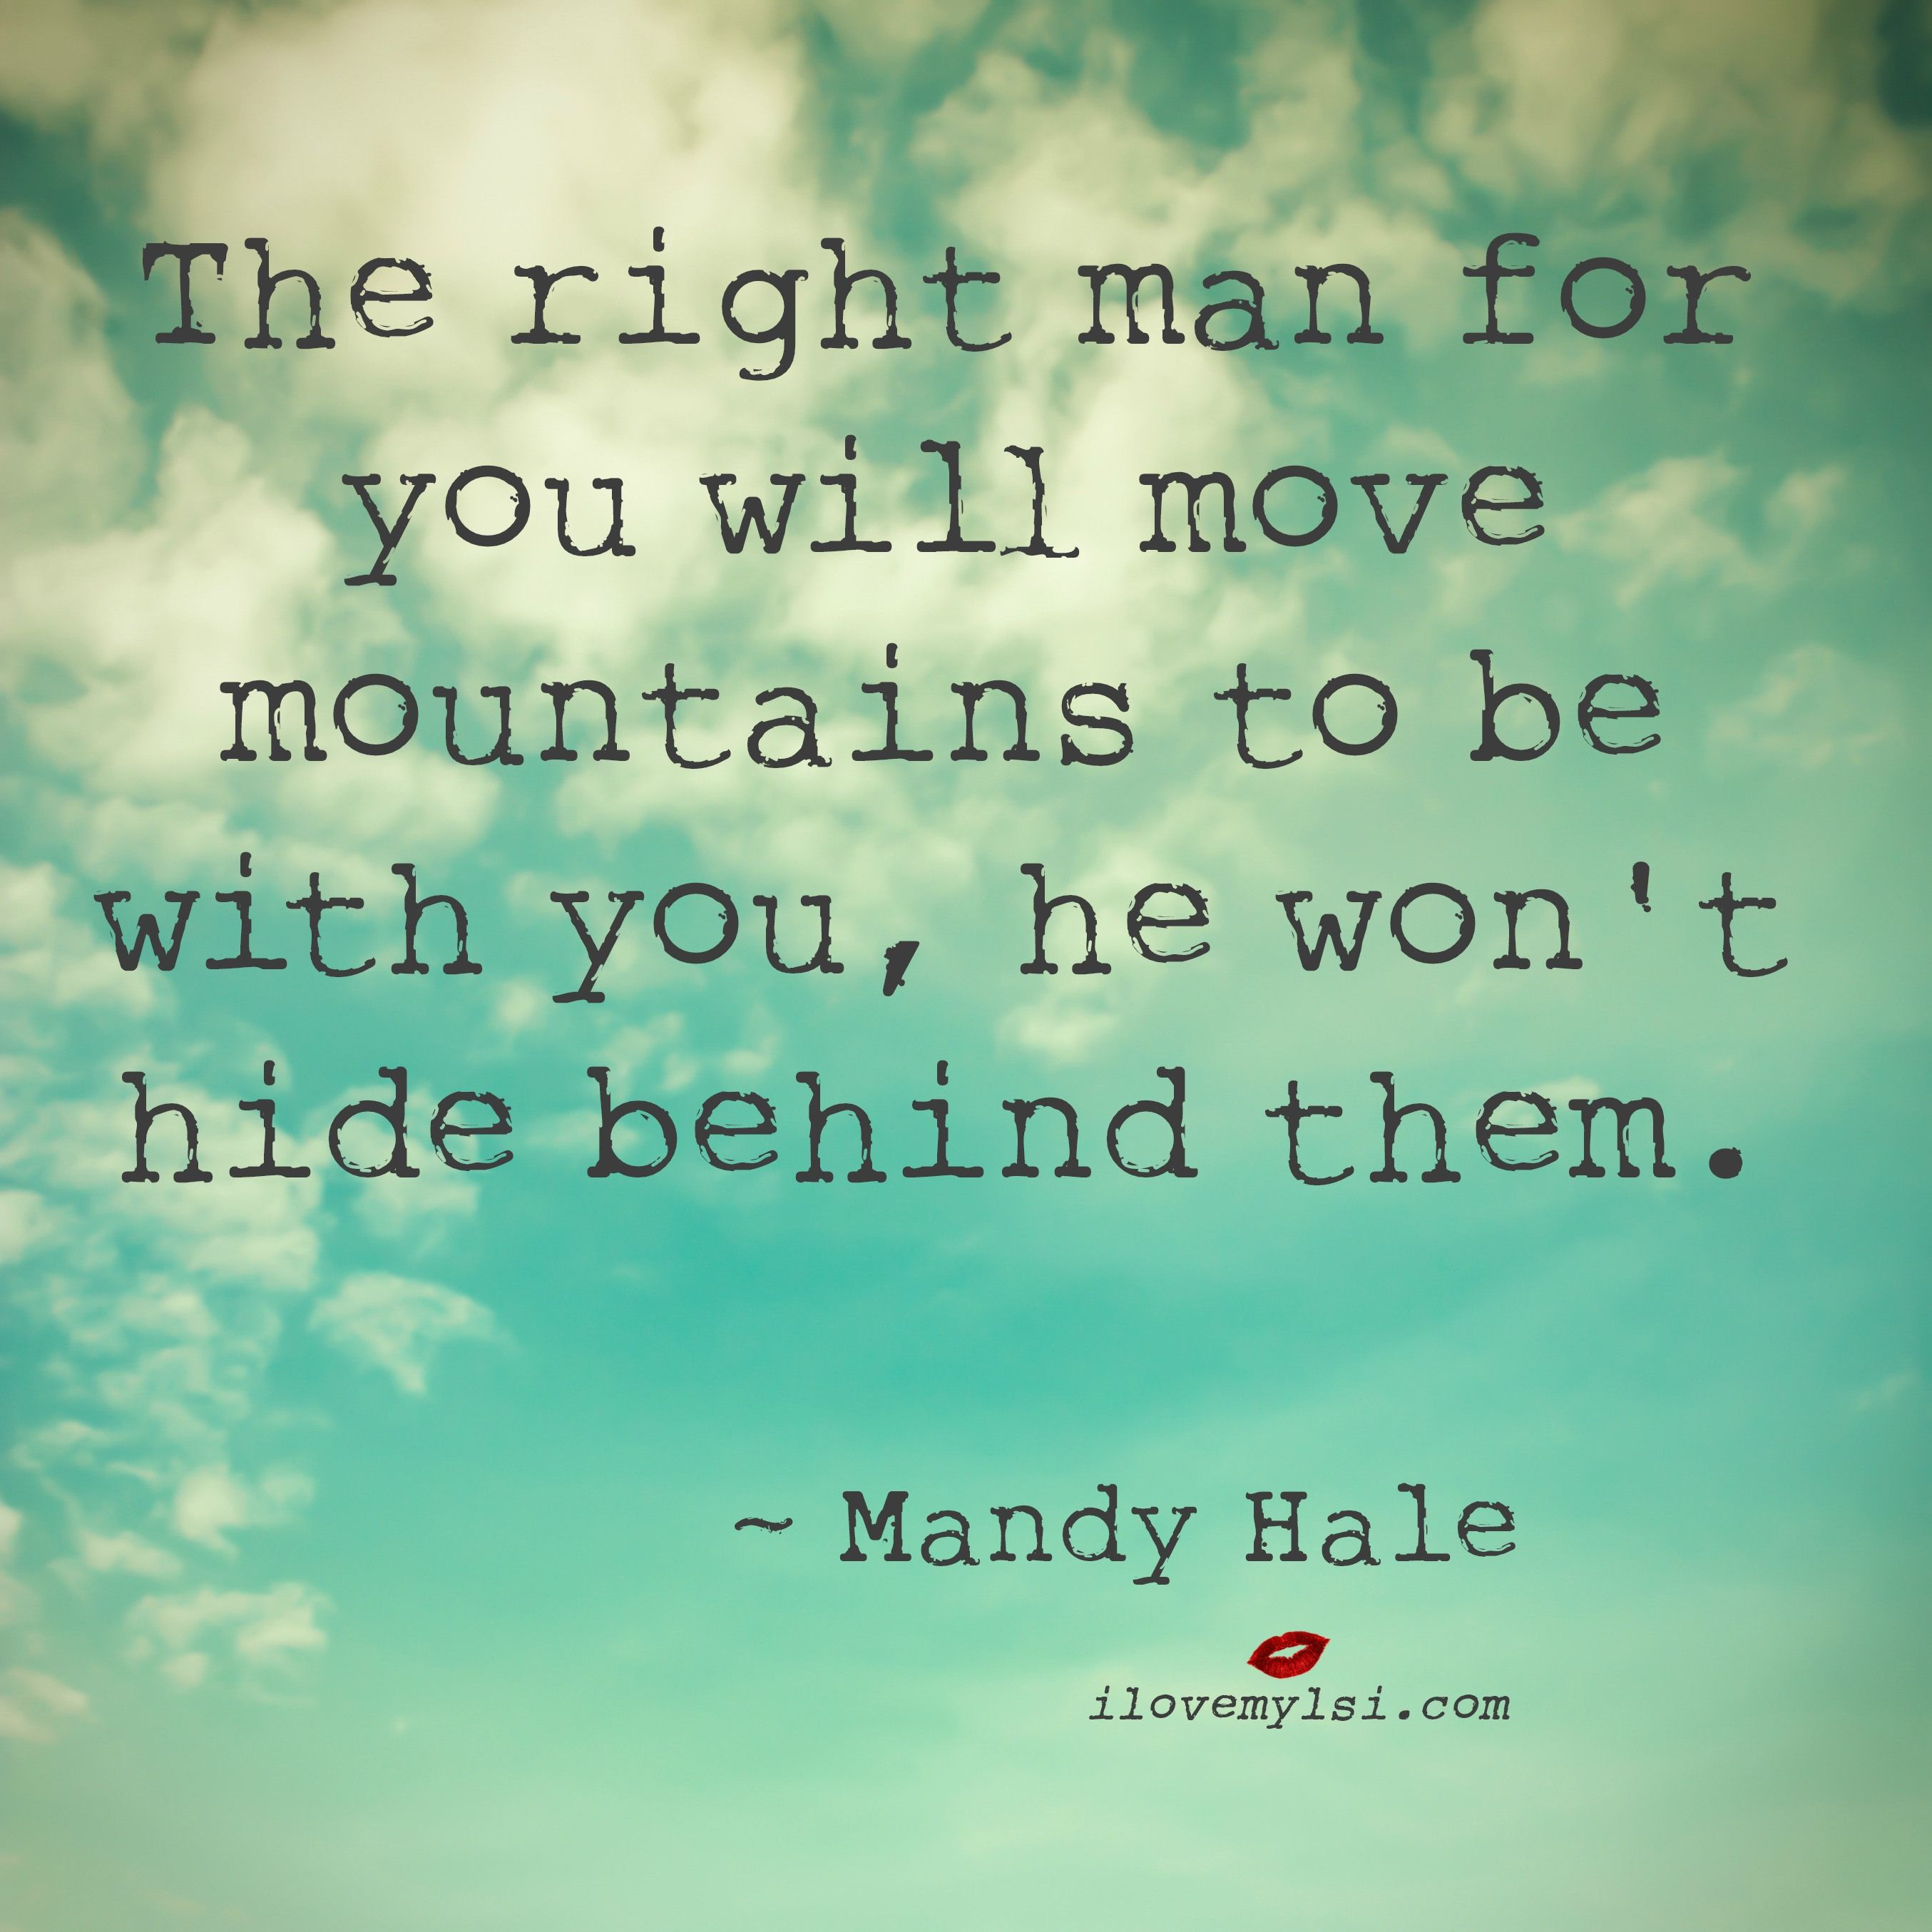 The right man for you will move mountains - I Love My LSI